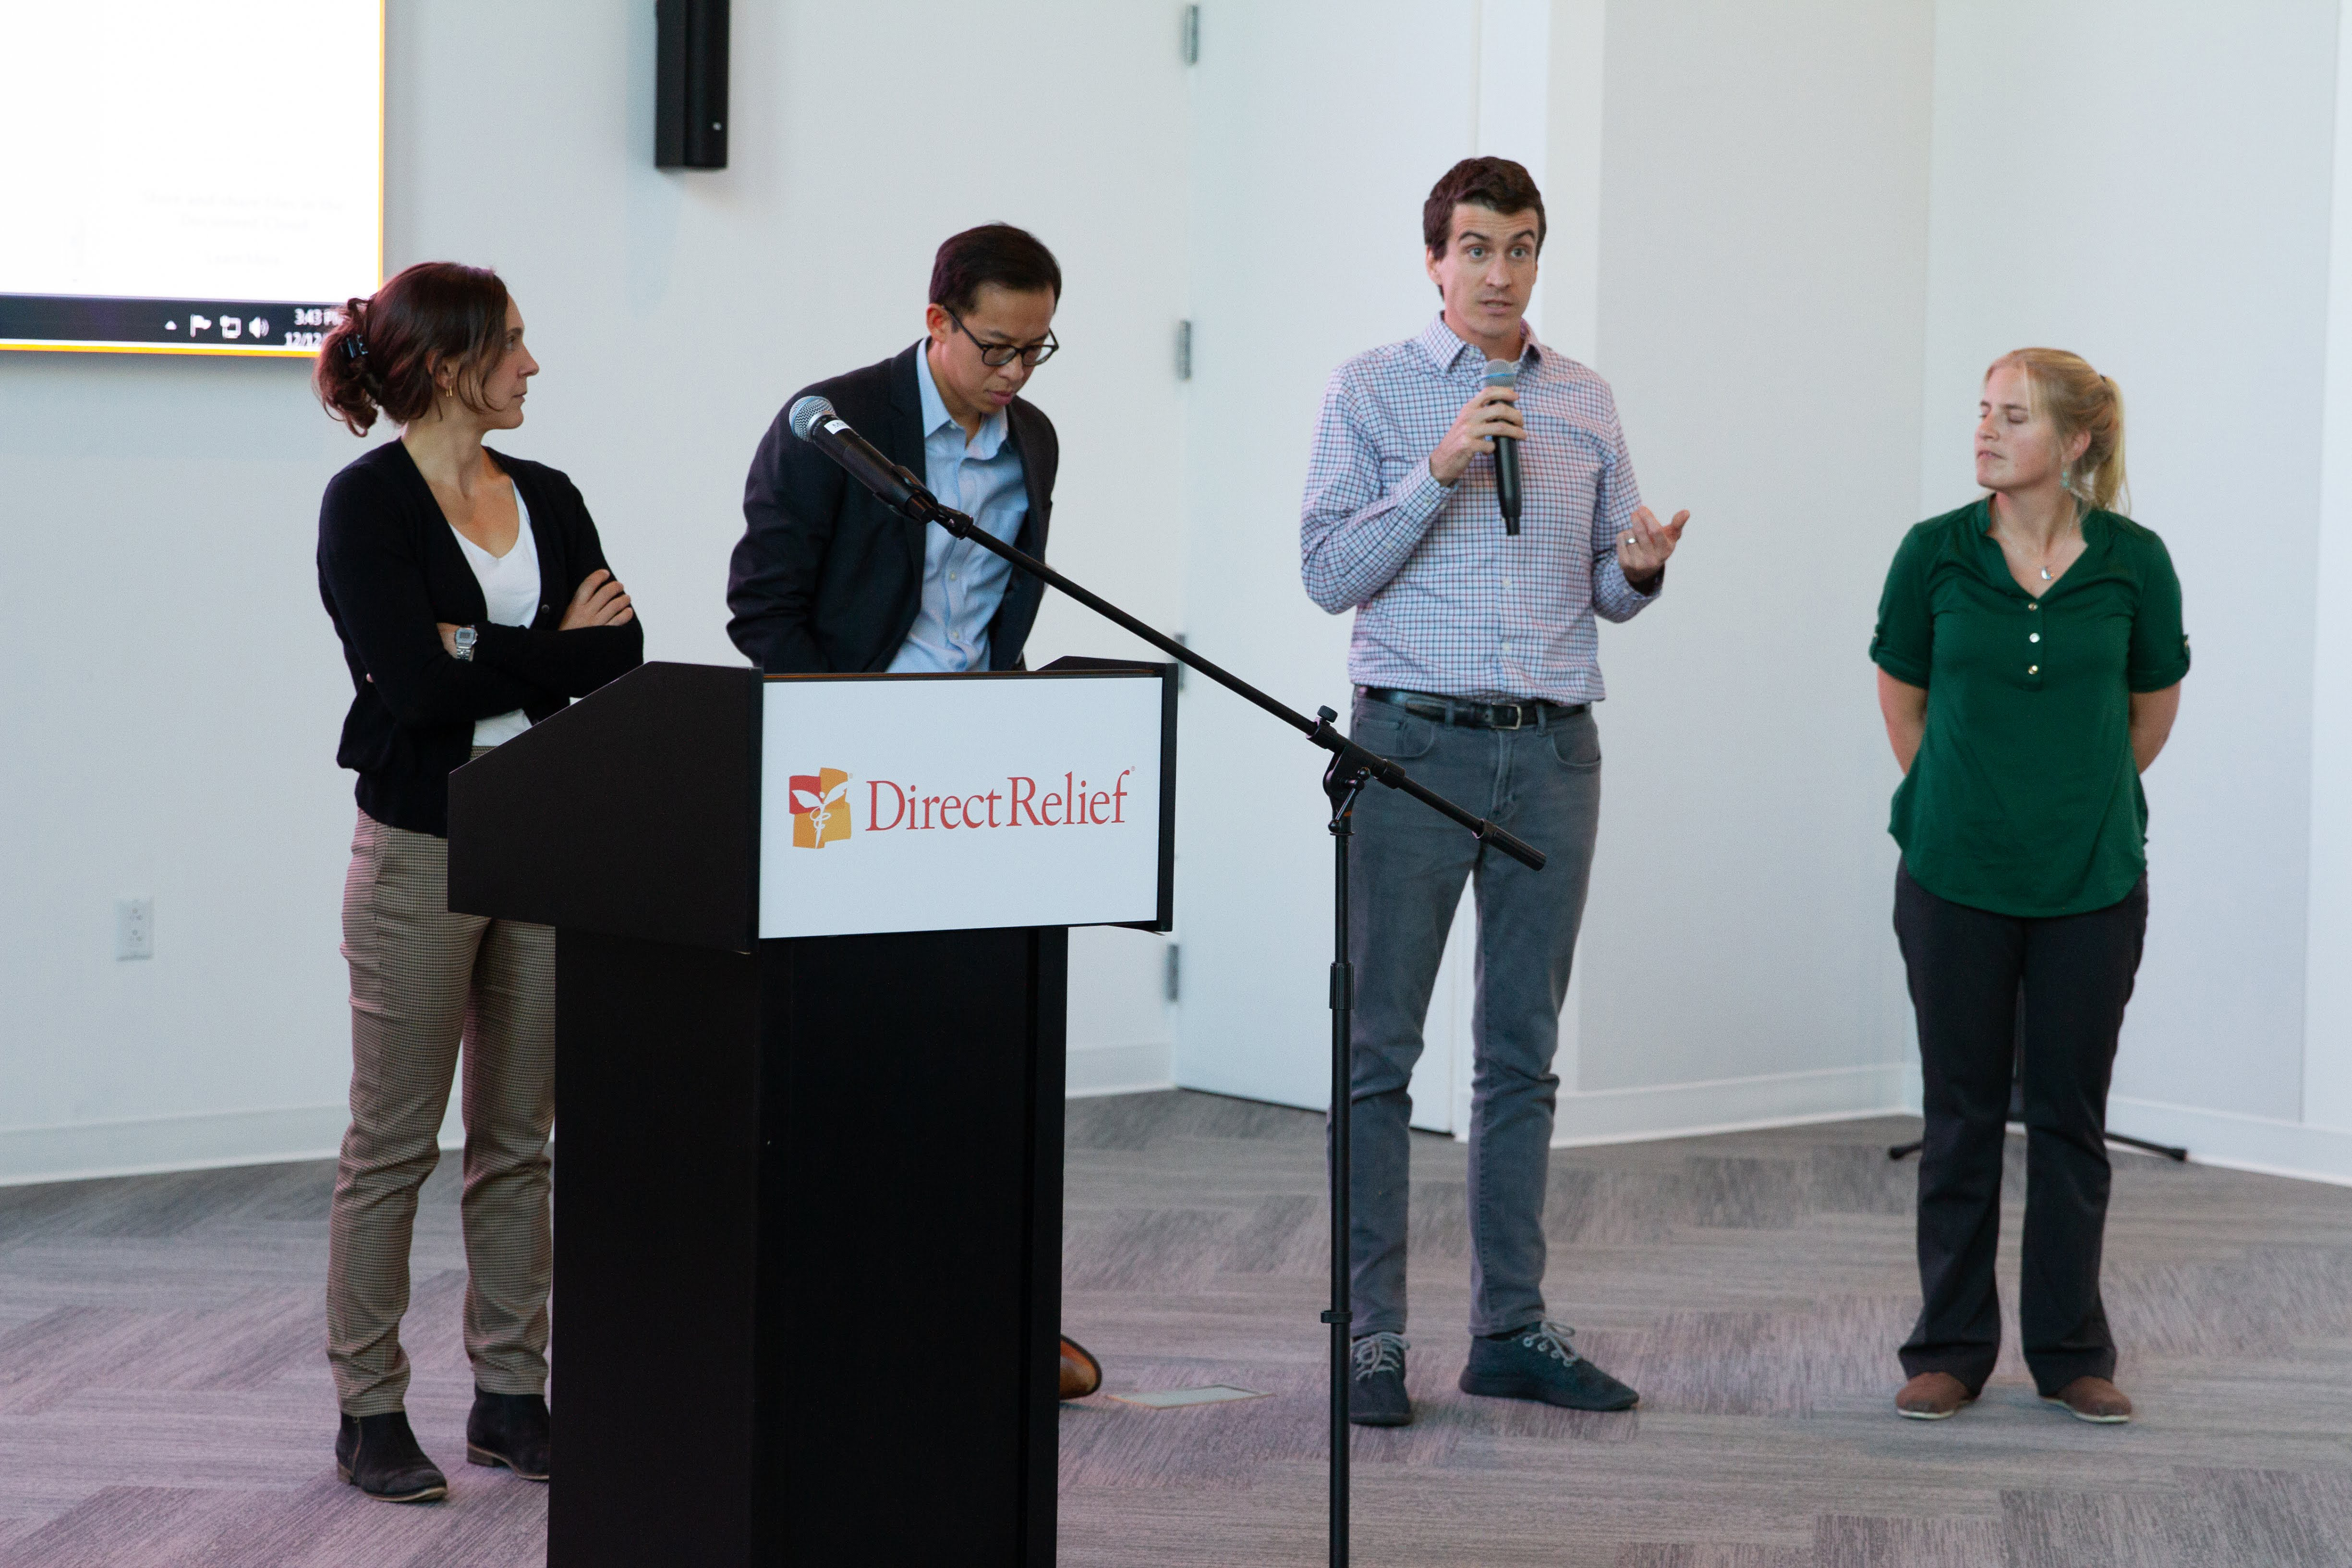 Dr. Mark Buntaine of UCSB's Bren School of Environmental Science and Management, speaks at Direct Relief on Dec. 12, 2018. Buntaine and Drs. Kelsey Jack, Ashley Larsen and Kyle Meng spoke about the effect of climate and disaster response. (Lara Cooper/Direct Relief)